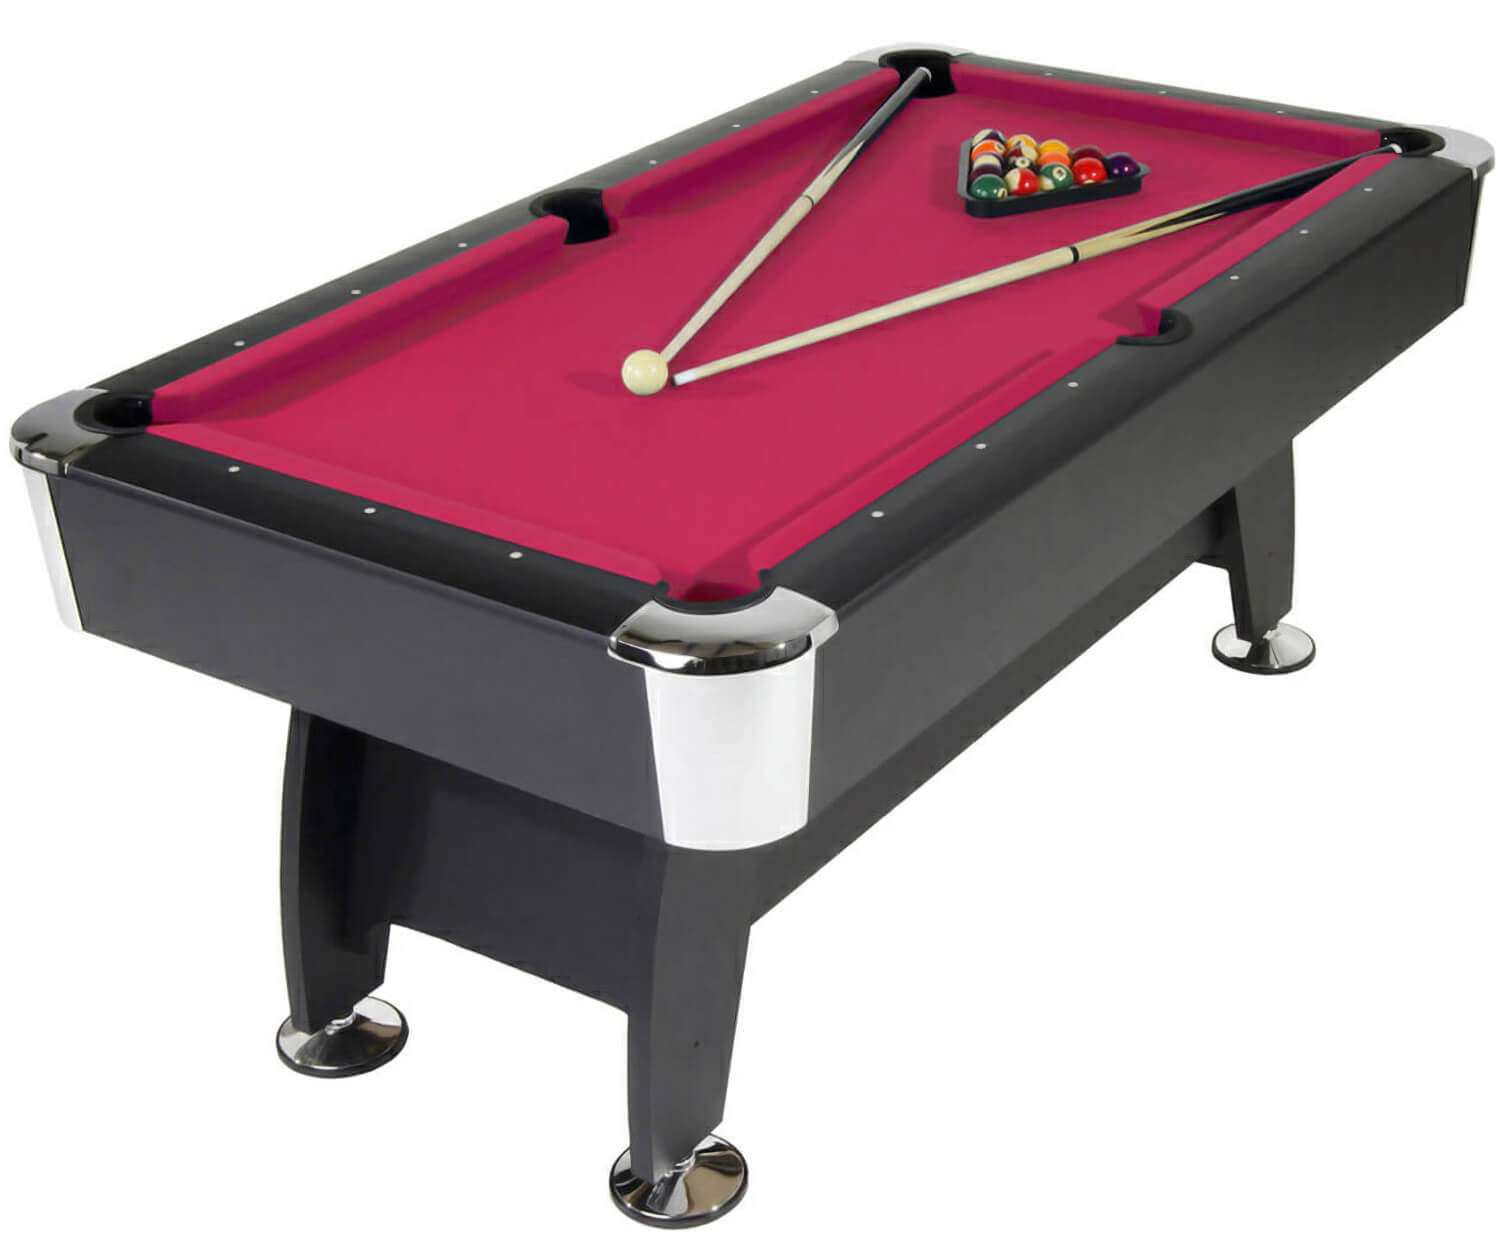 Strikeworth pro american deluxe 6ft pool table liberty games for Table 6 of gstr 1